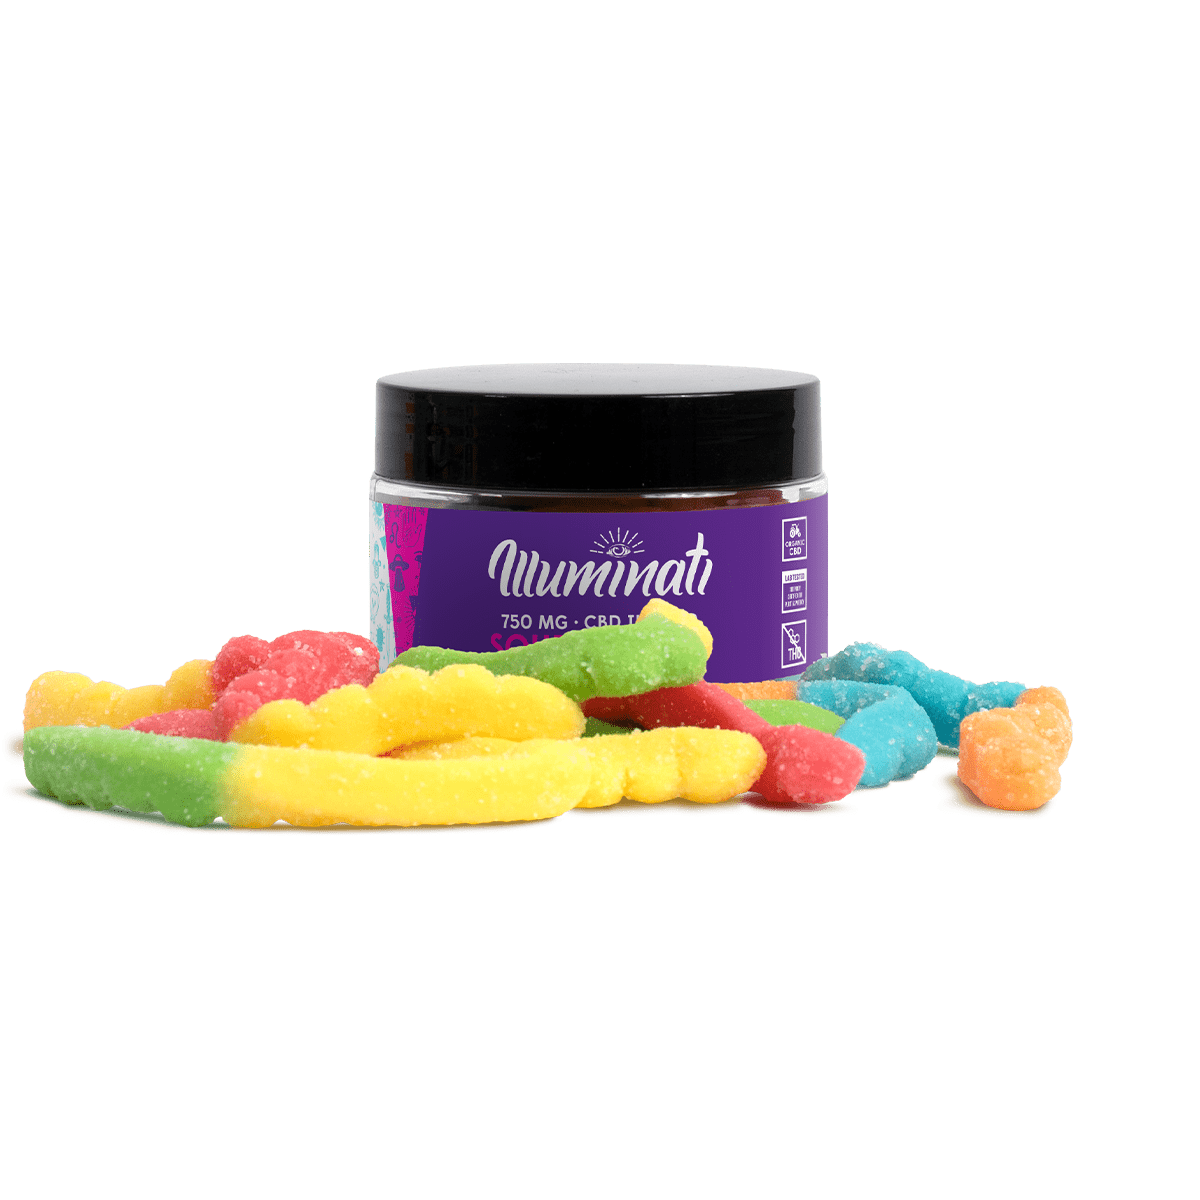 Illuminati CBD Sour Worms 750mg Jar